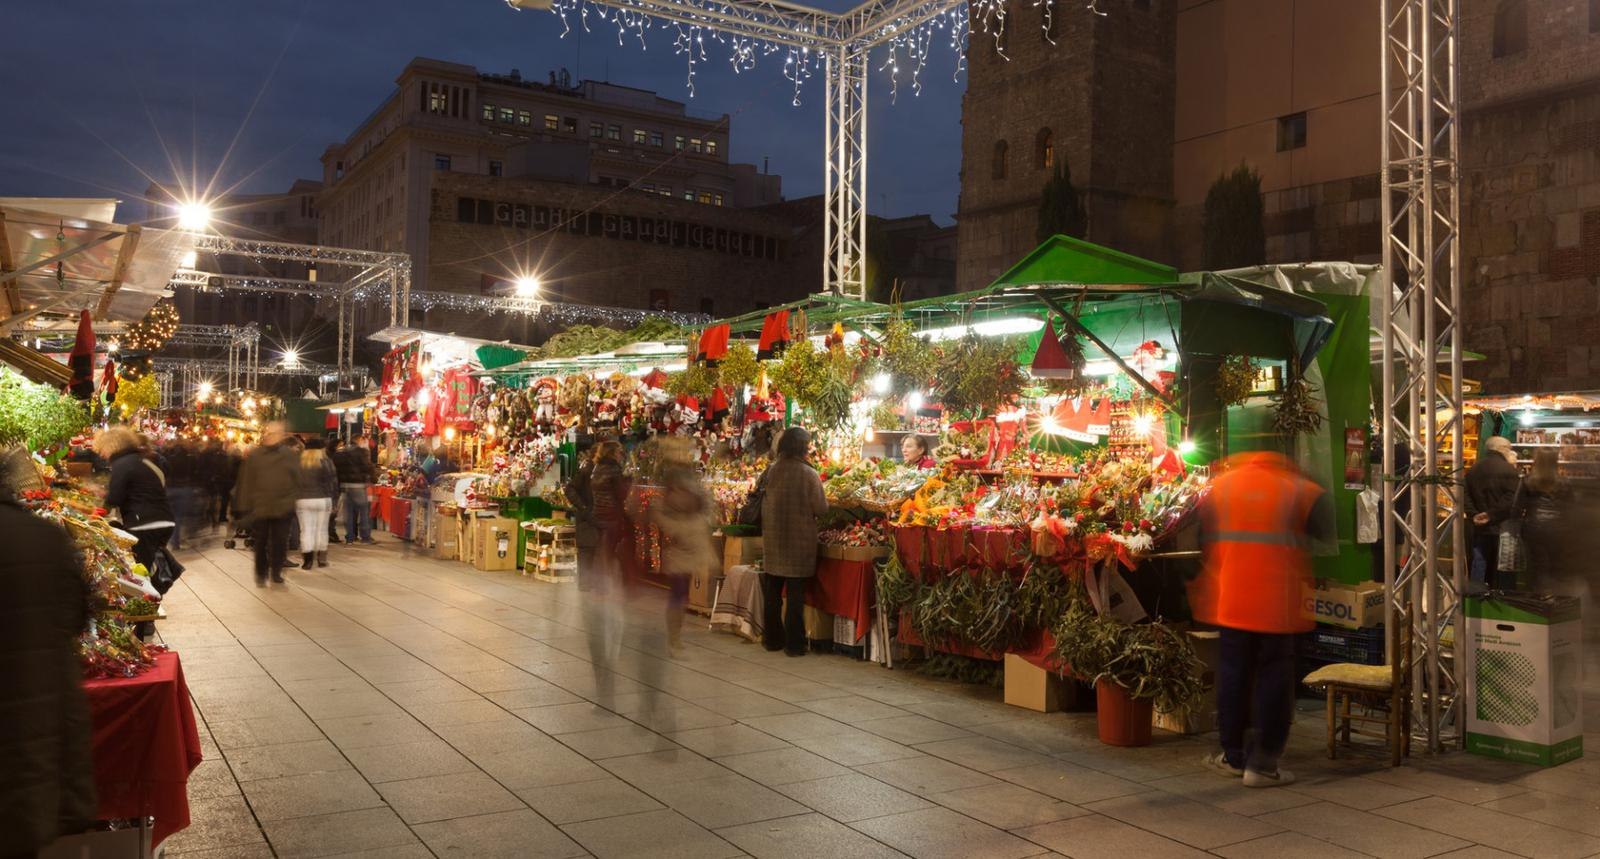 Traditional Christmas market in Barcelona